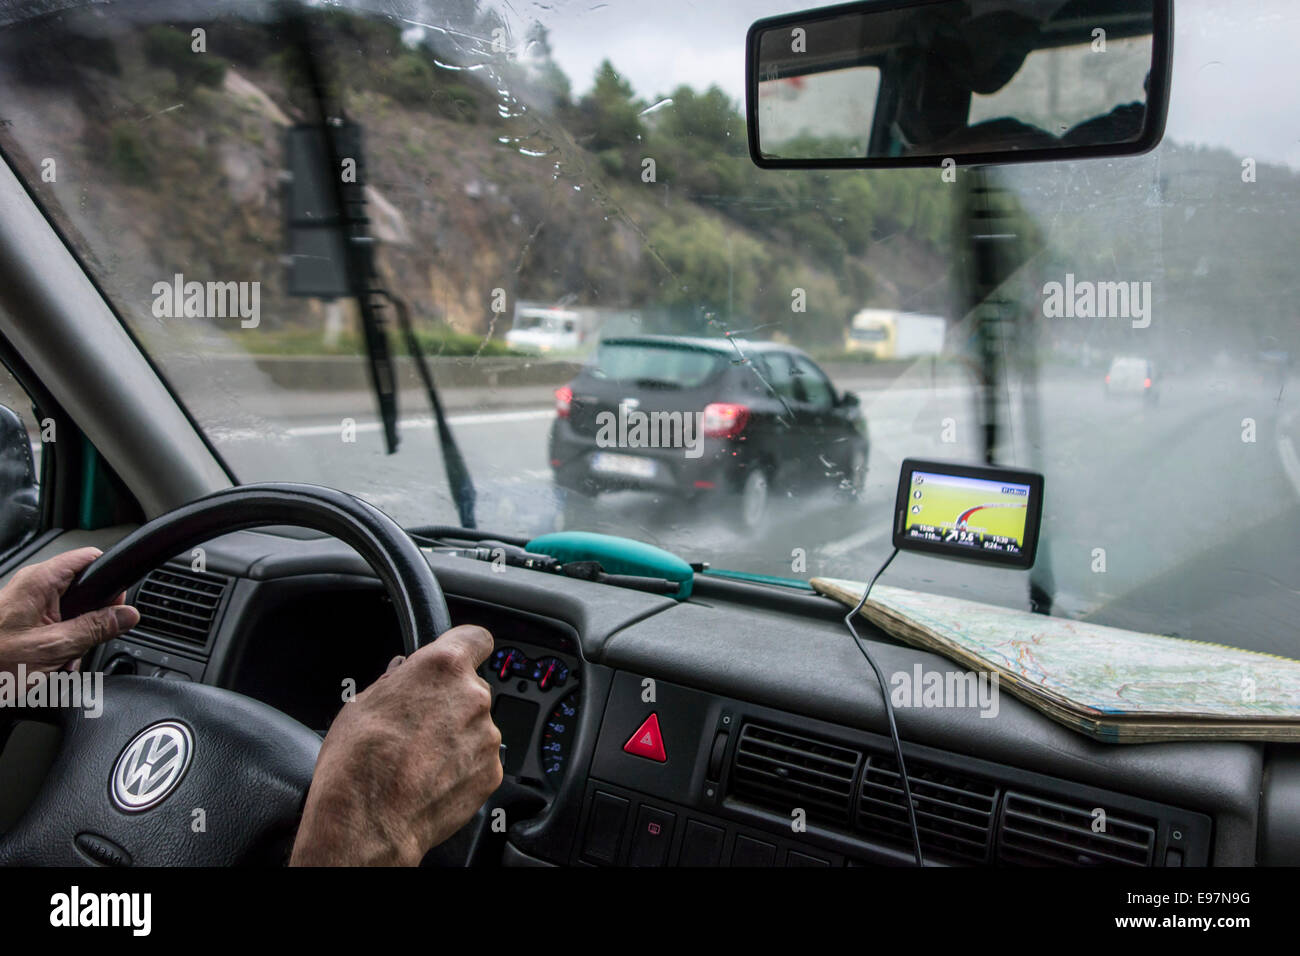 Speeding cars overtaking vehicle on highway during heavy rain shower seen from inside of car with GPS and road map - Stock Image